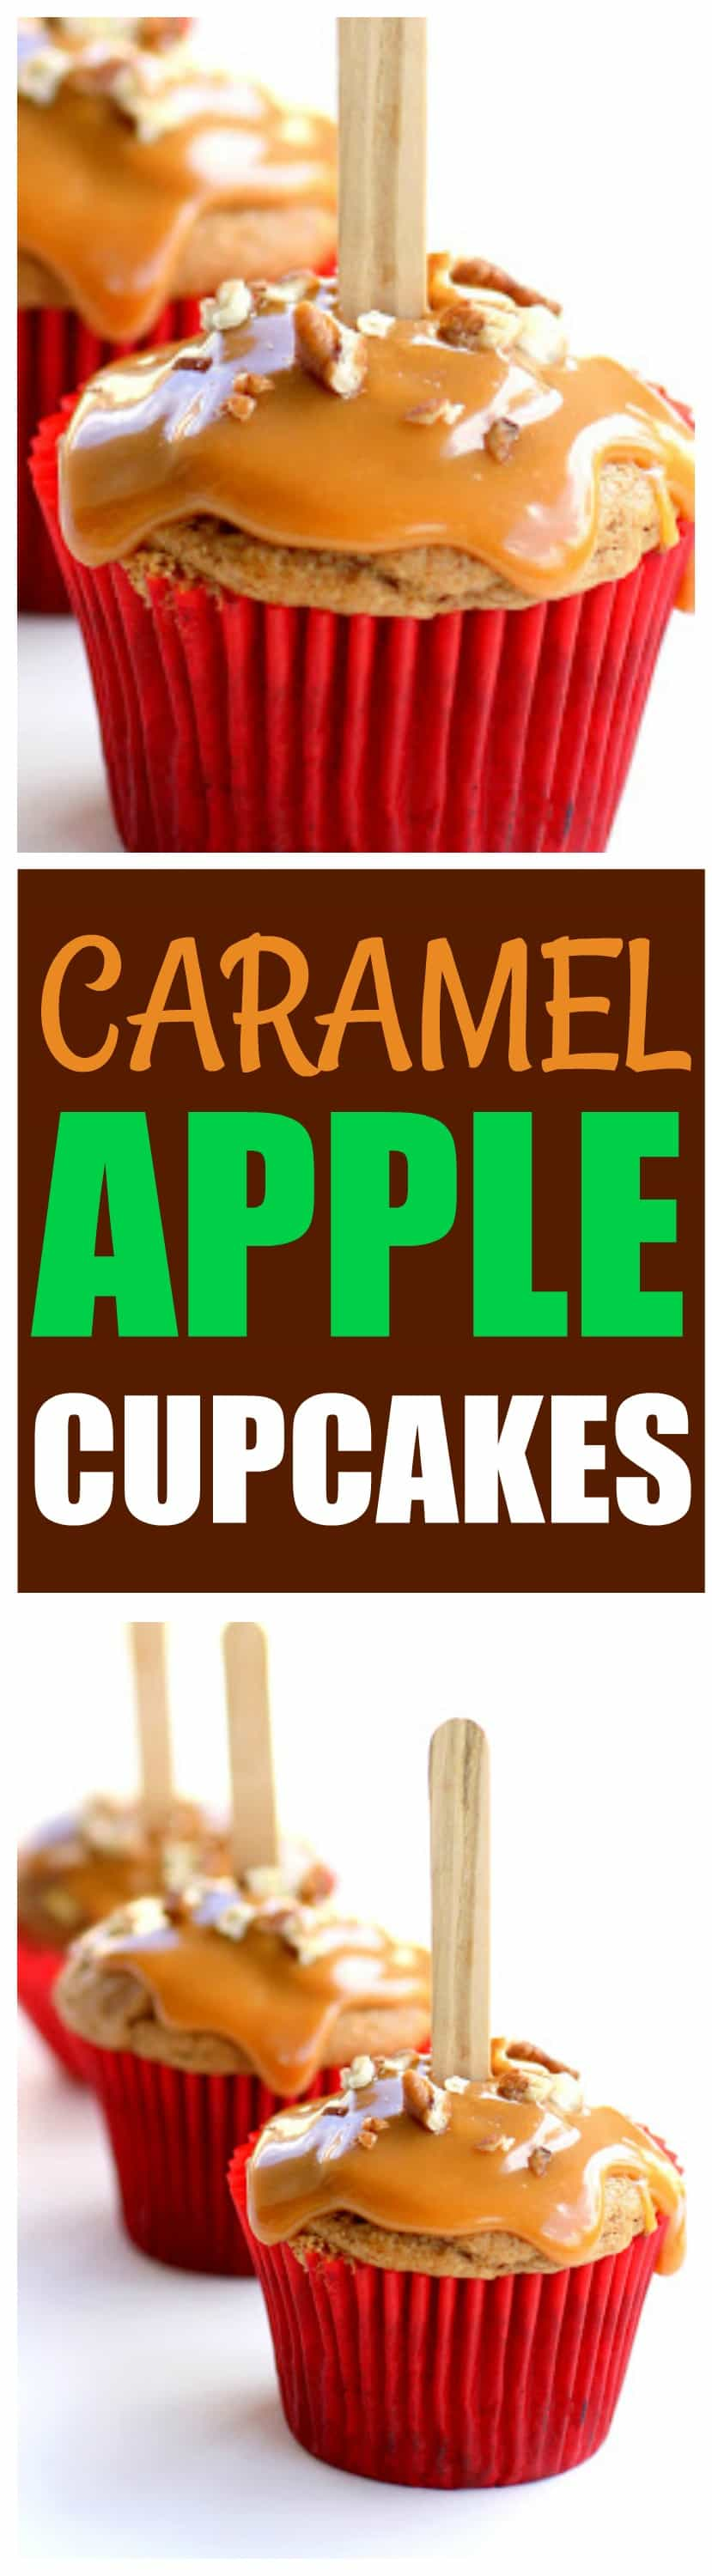 These Caramel Apple Cupcakes are simple and easy. This recipe has all of the fall flavors you love and the cupcakes are drizzled with caramel and nuts. They look like a caramel apple in cupcake form. #caramel #apple #cupcakes #dessert #recipe